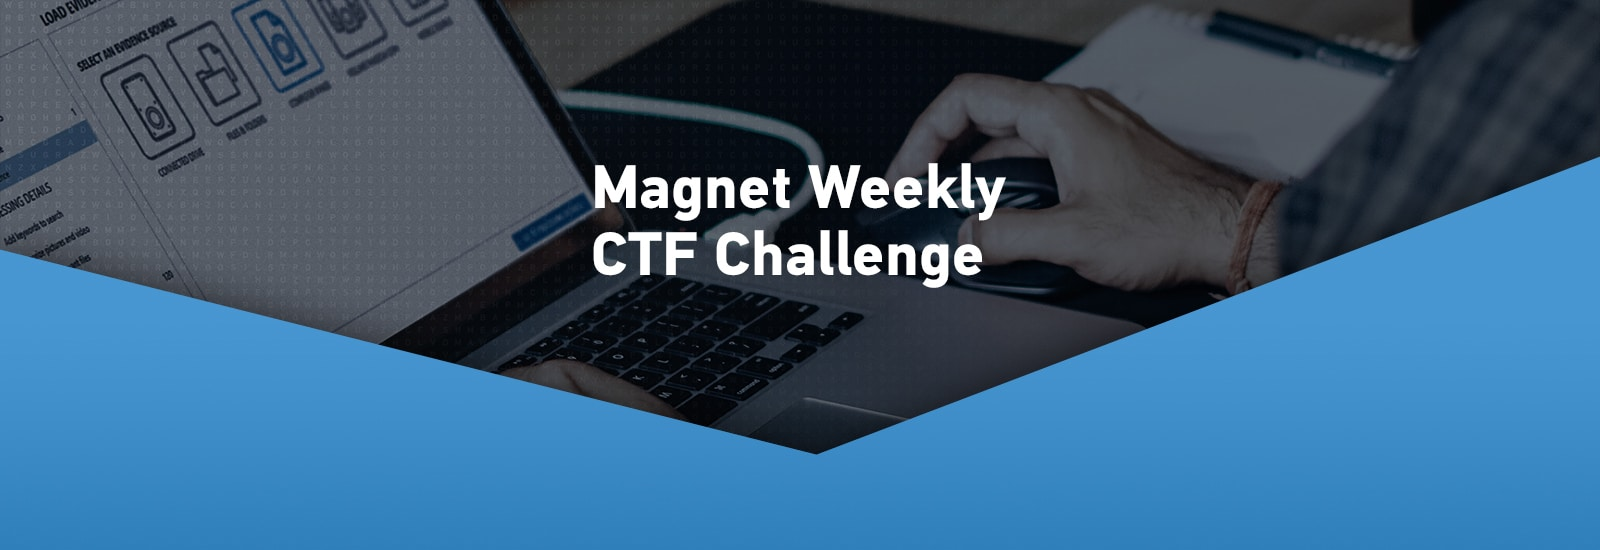 Mapping the Digits - Week 1 - Magnet Weekly CTF